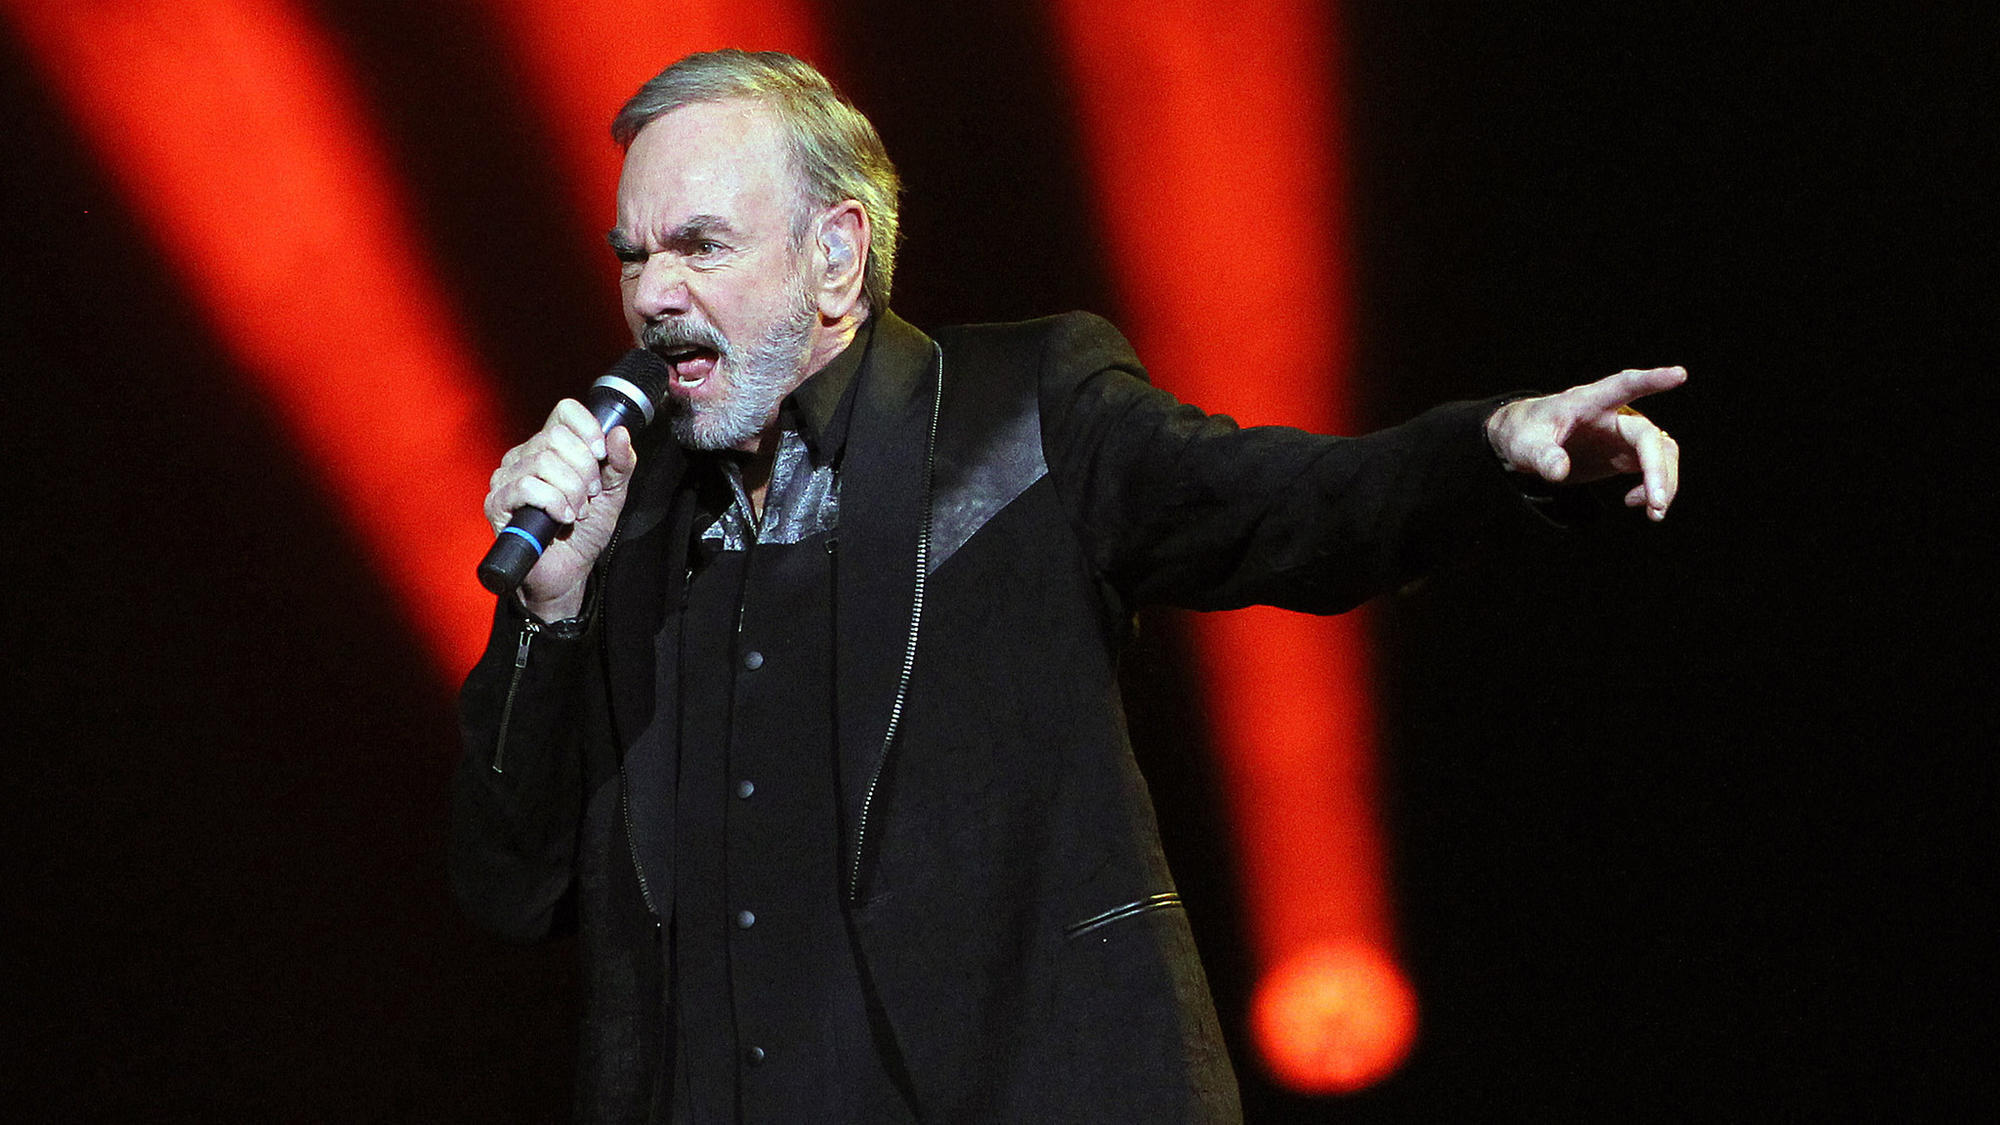 Neil Diamond retires from touring after Parkinson's diagnosis; did our 2015 interview predict his decision?